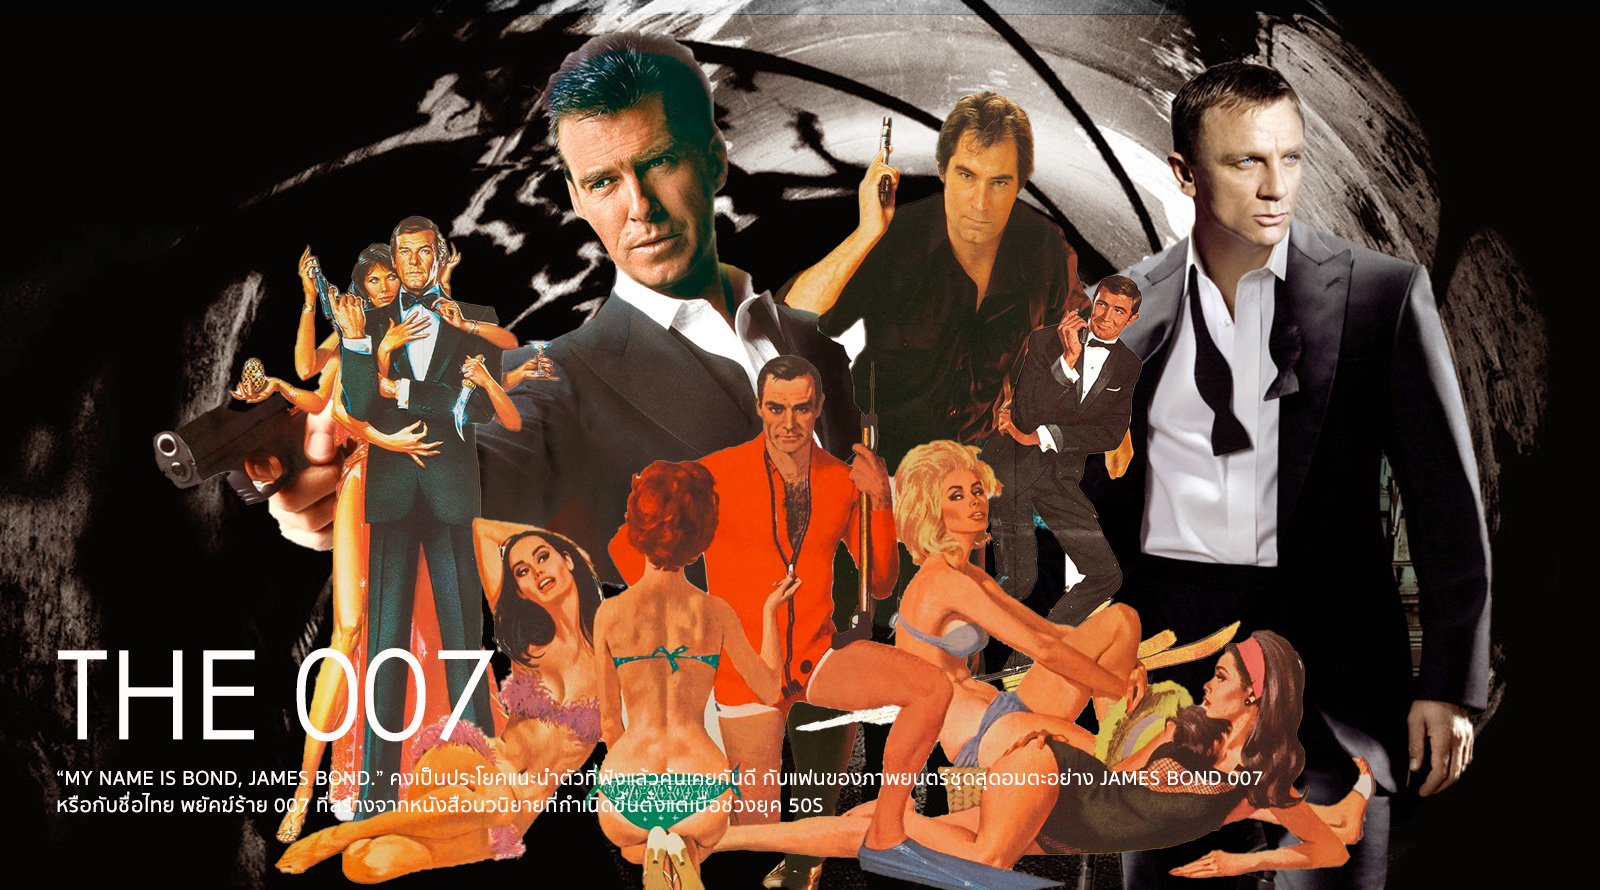 The 007